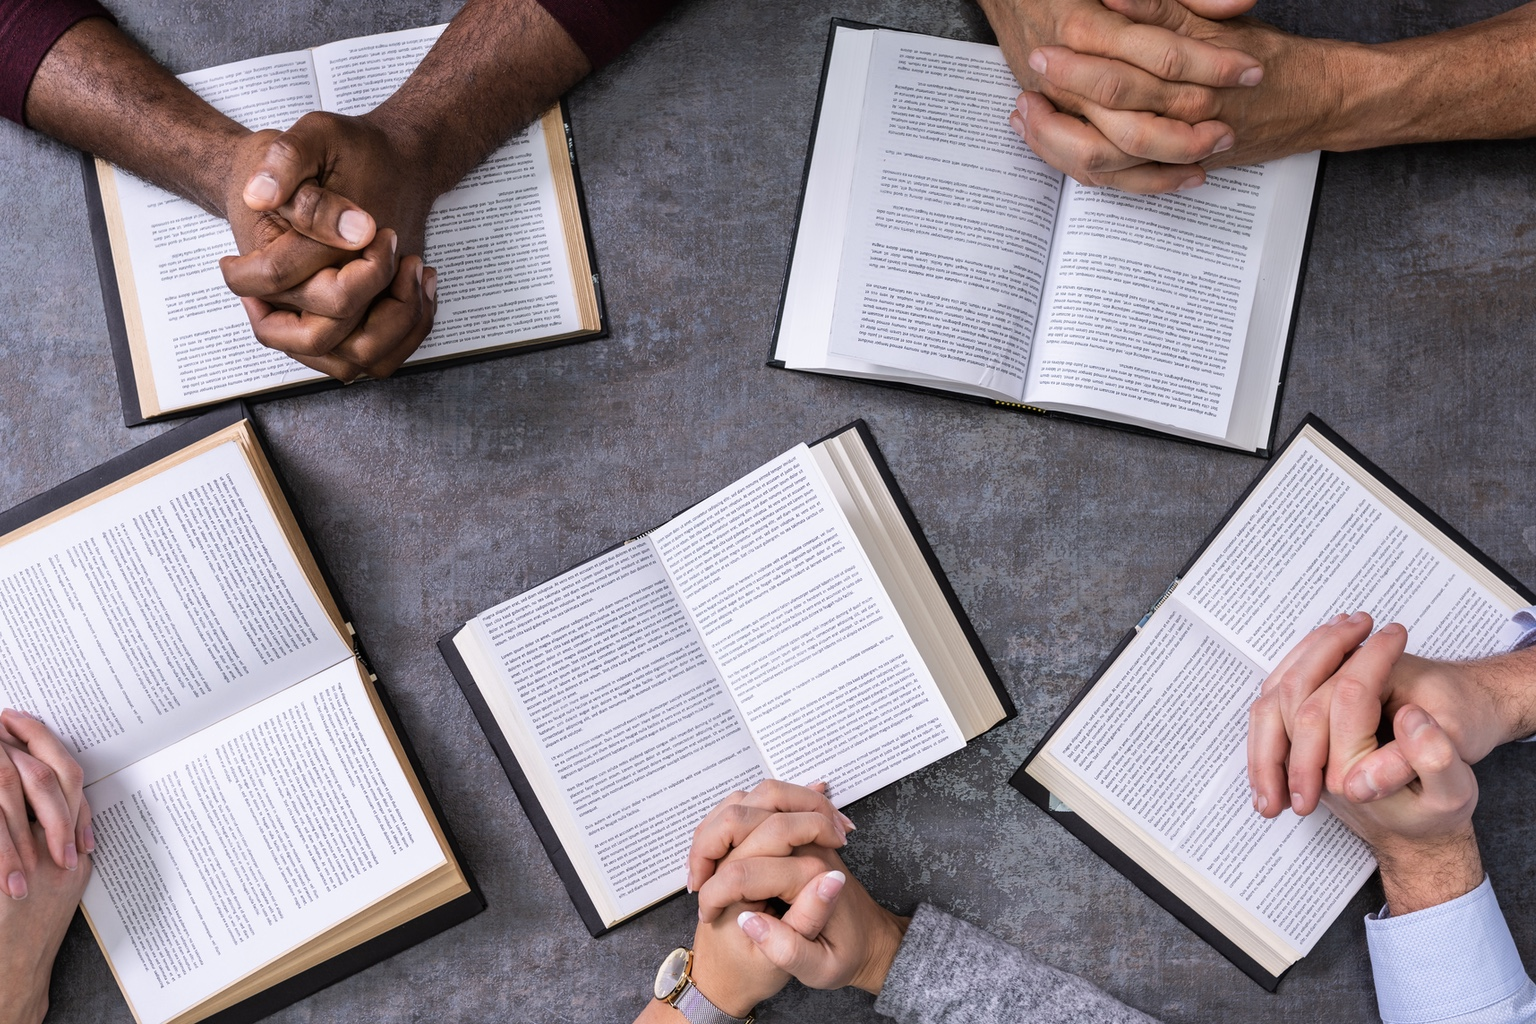 Elevated view of a diverse group of people reading books around a table